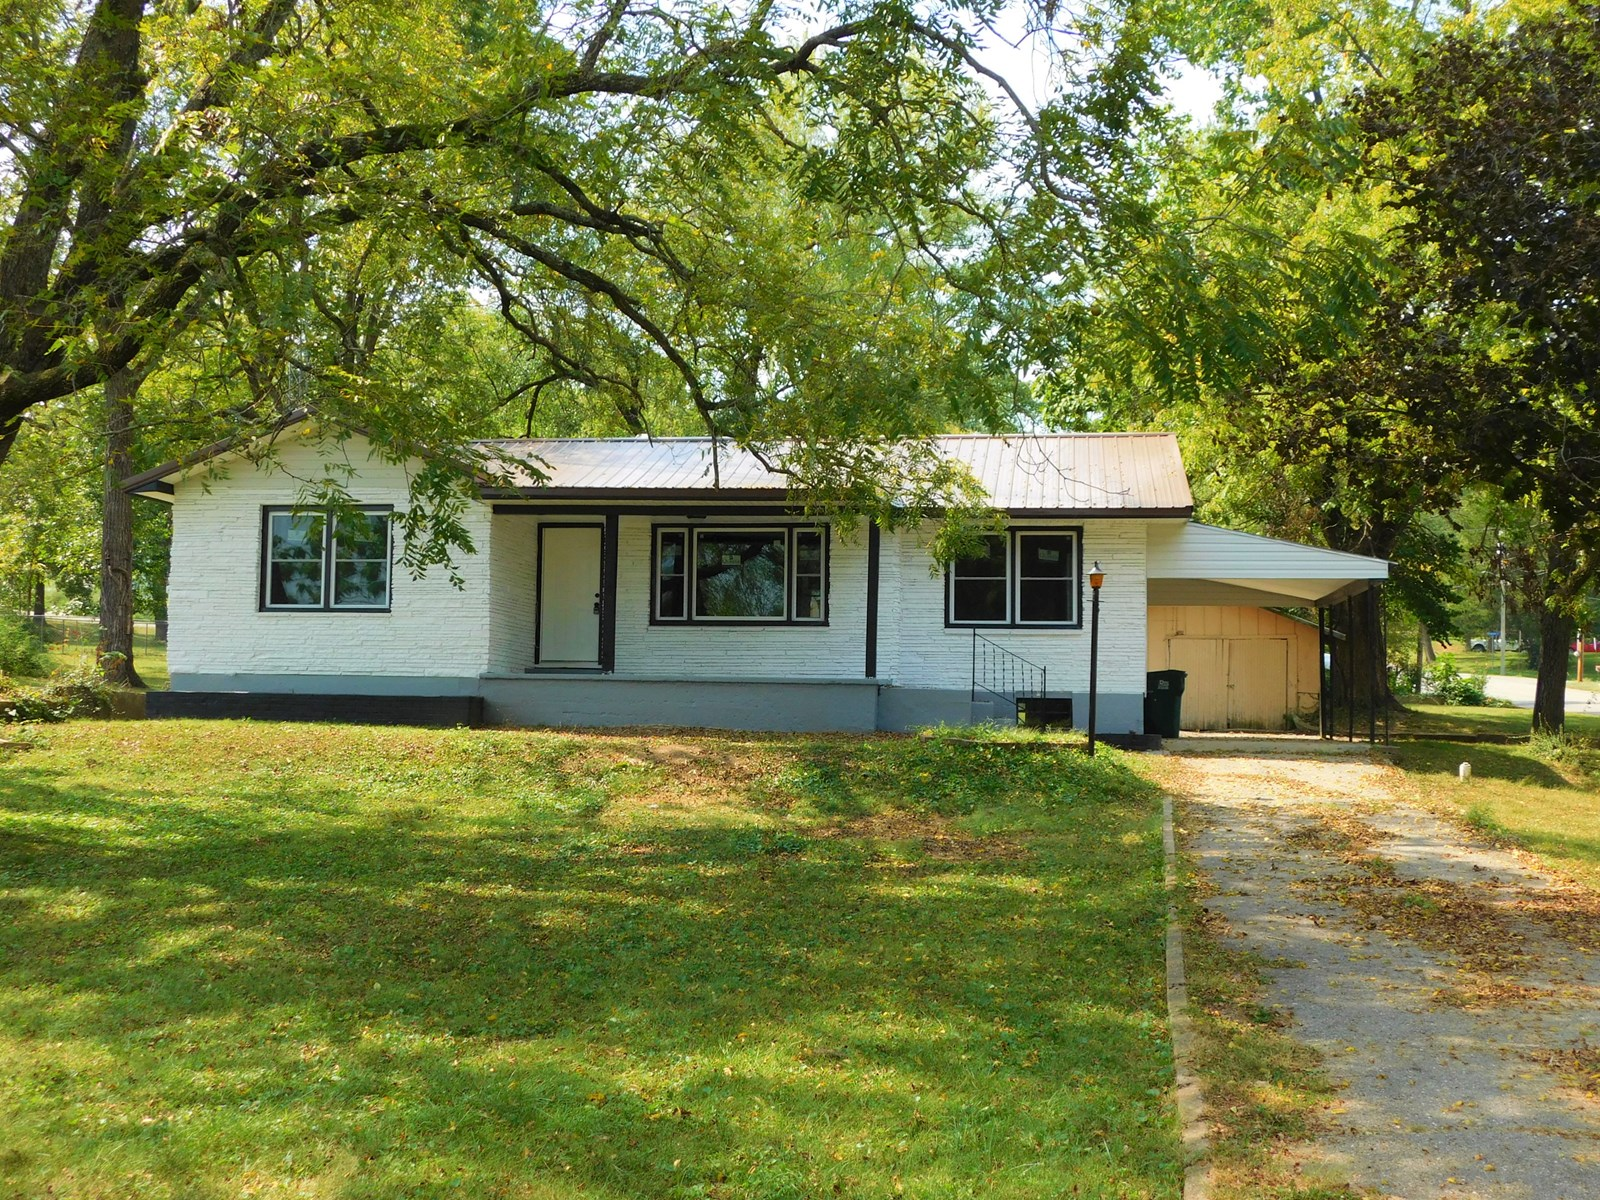 Newly Remodeled Home For Sale in Cabool, Mo